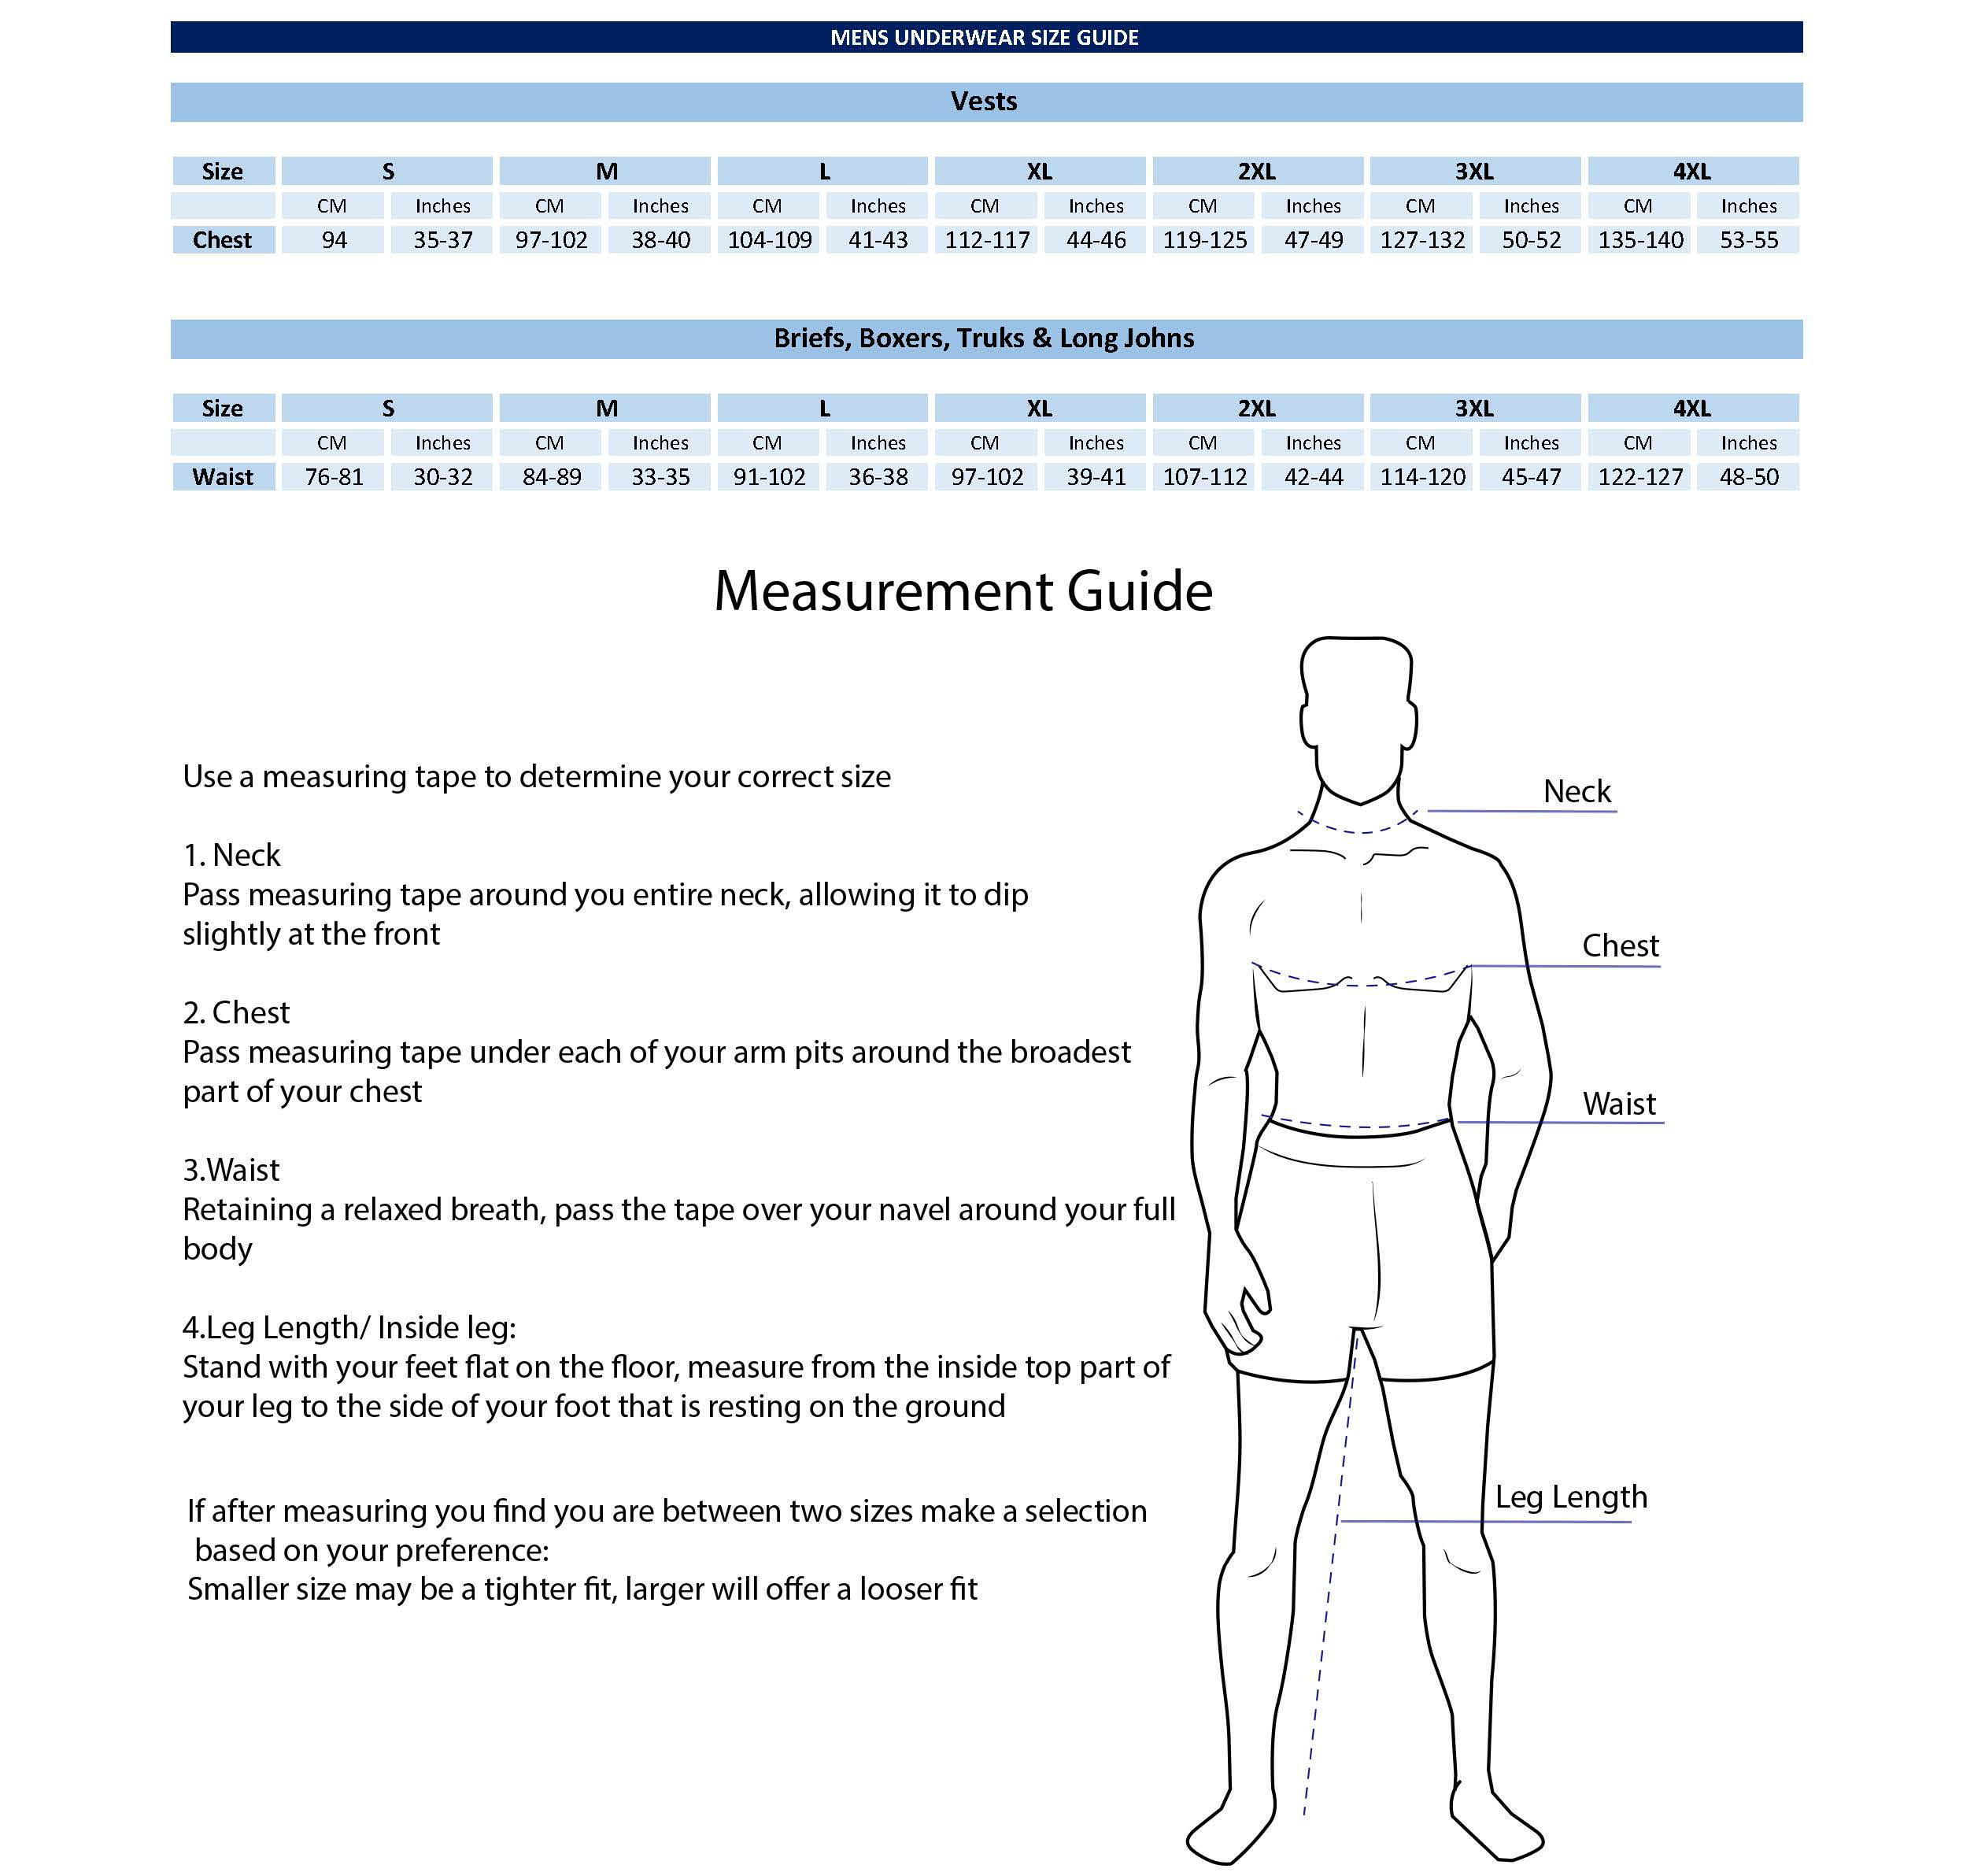 new-cropped-mens-underwear-size-guide-2016-03-04.jpg